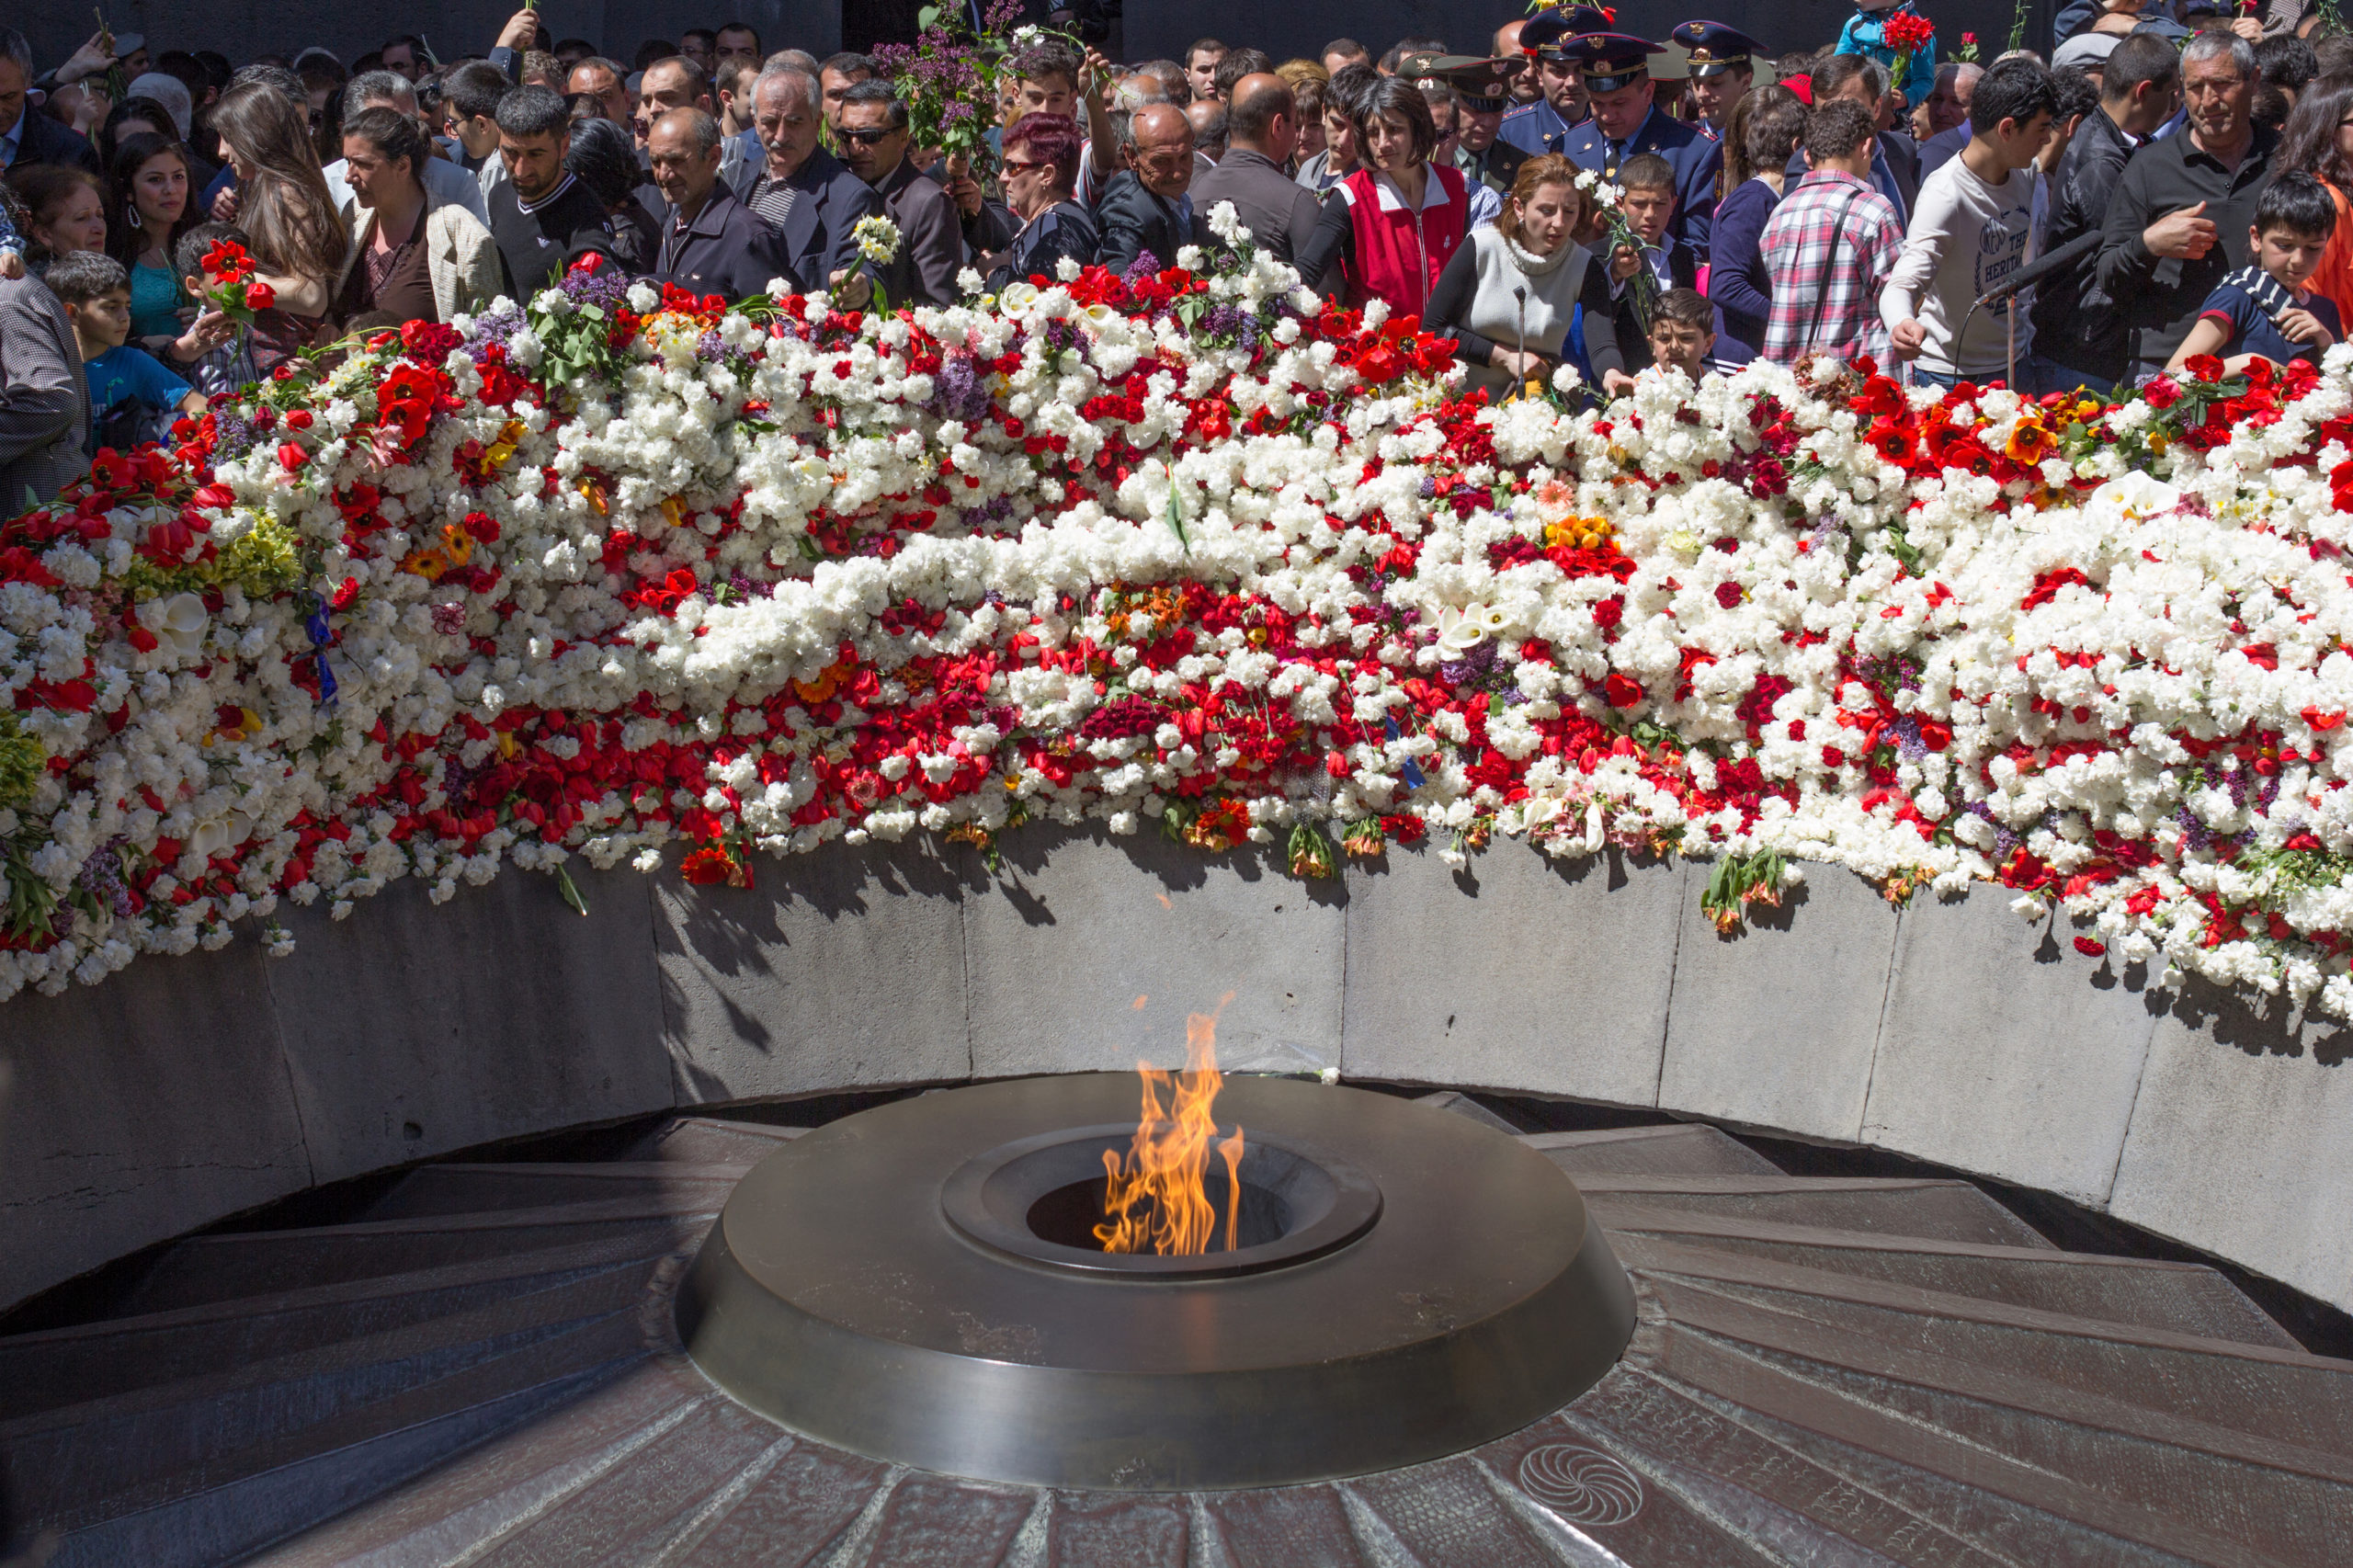 Flowers and people surround a memorial flame in Armenia